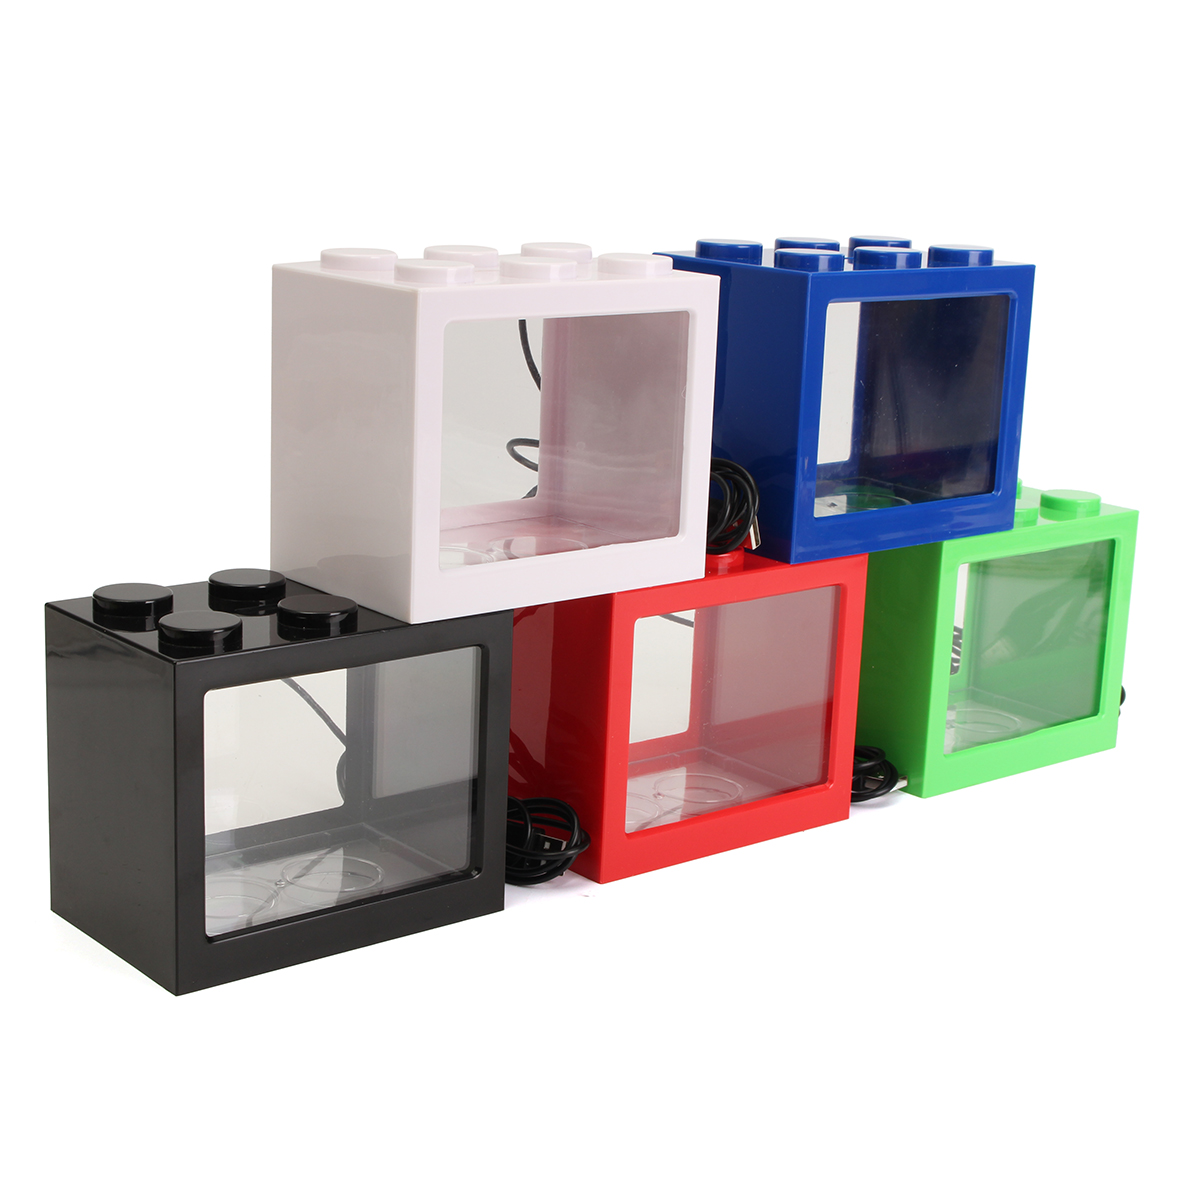 Mini USB LED Light Clear Fish Tank Mini Aquarium Box Bettas Office Desktop Decor